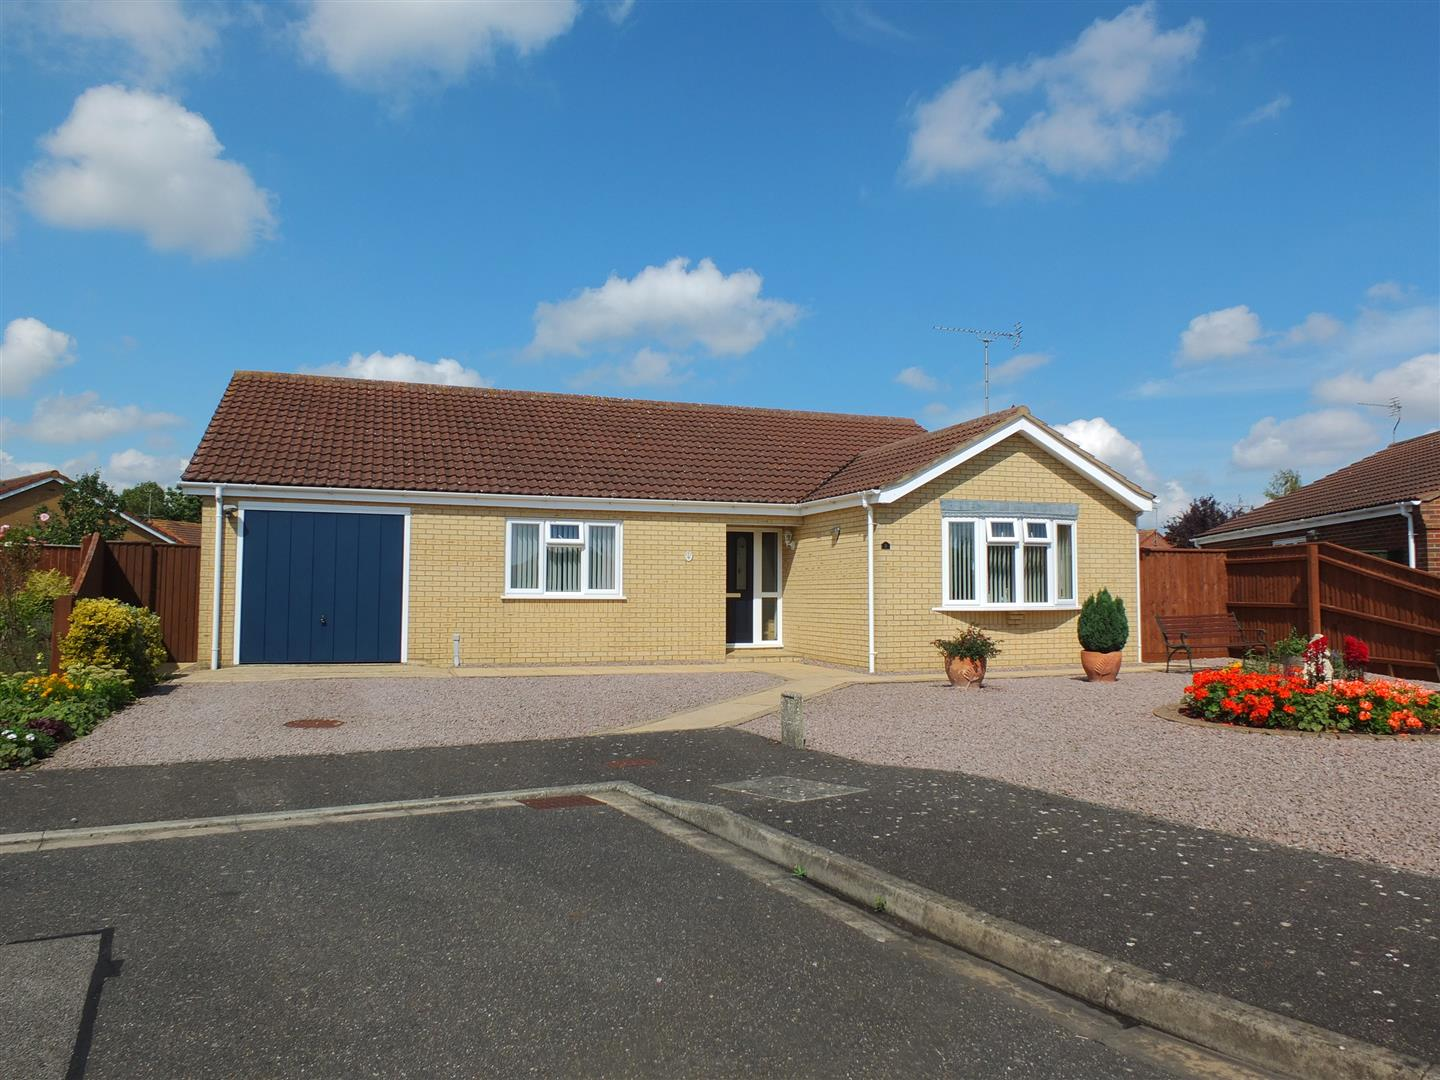 3 bed detached bungalow for sale in Long Sutton Spalding, PE12 9FT  - Property Image 1